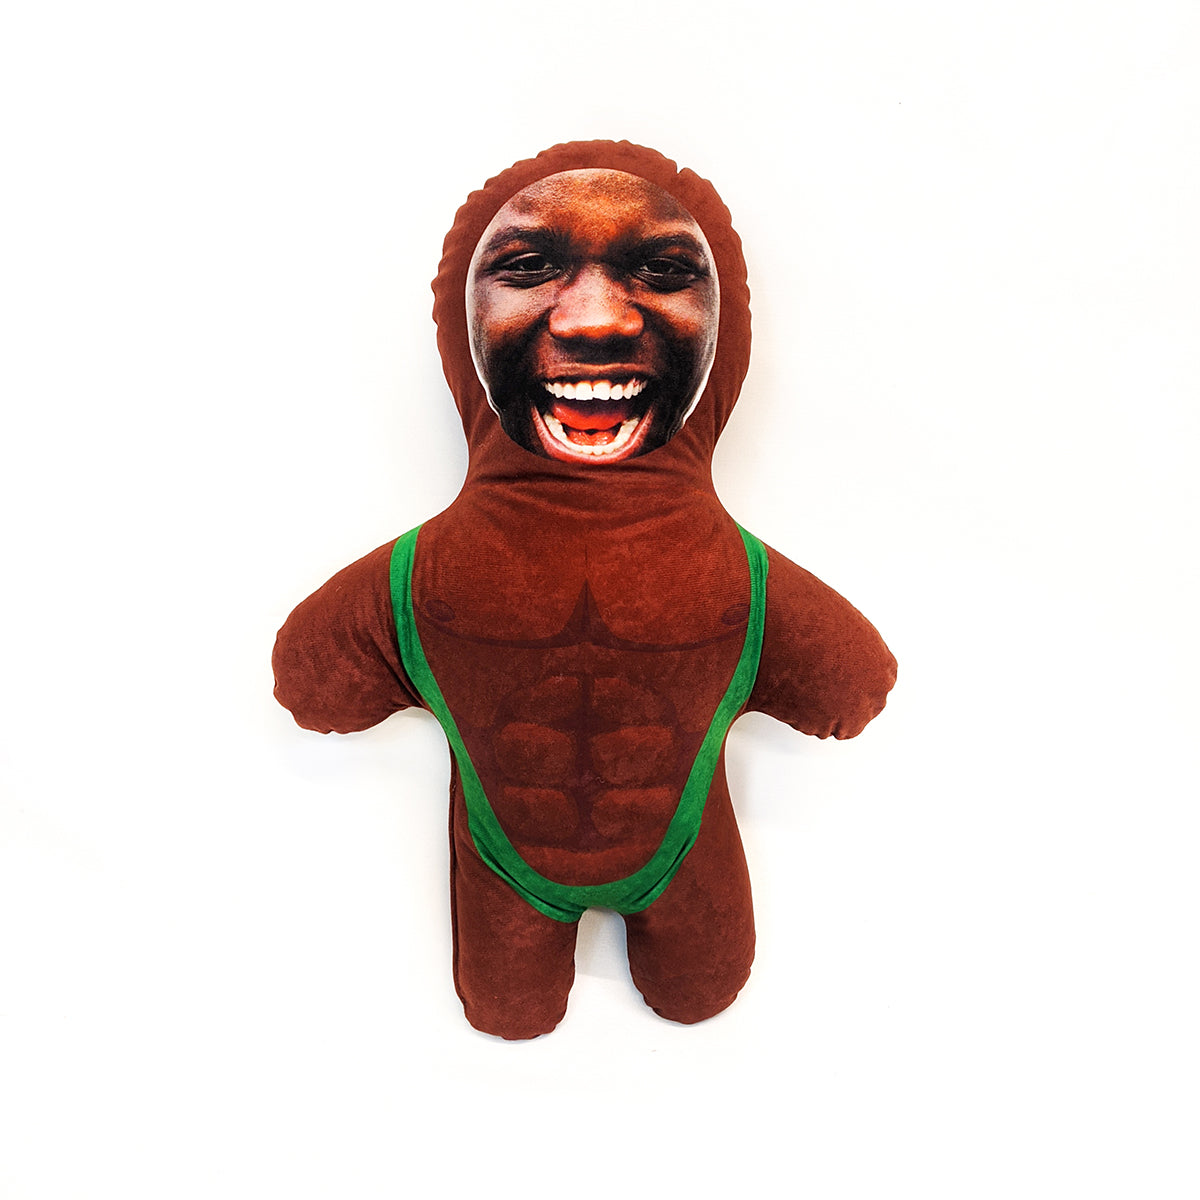 mankini dark mini me doll